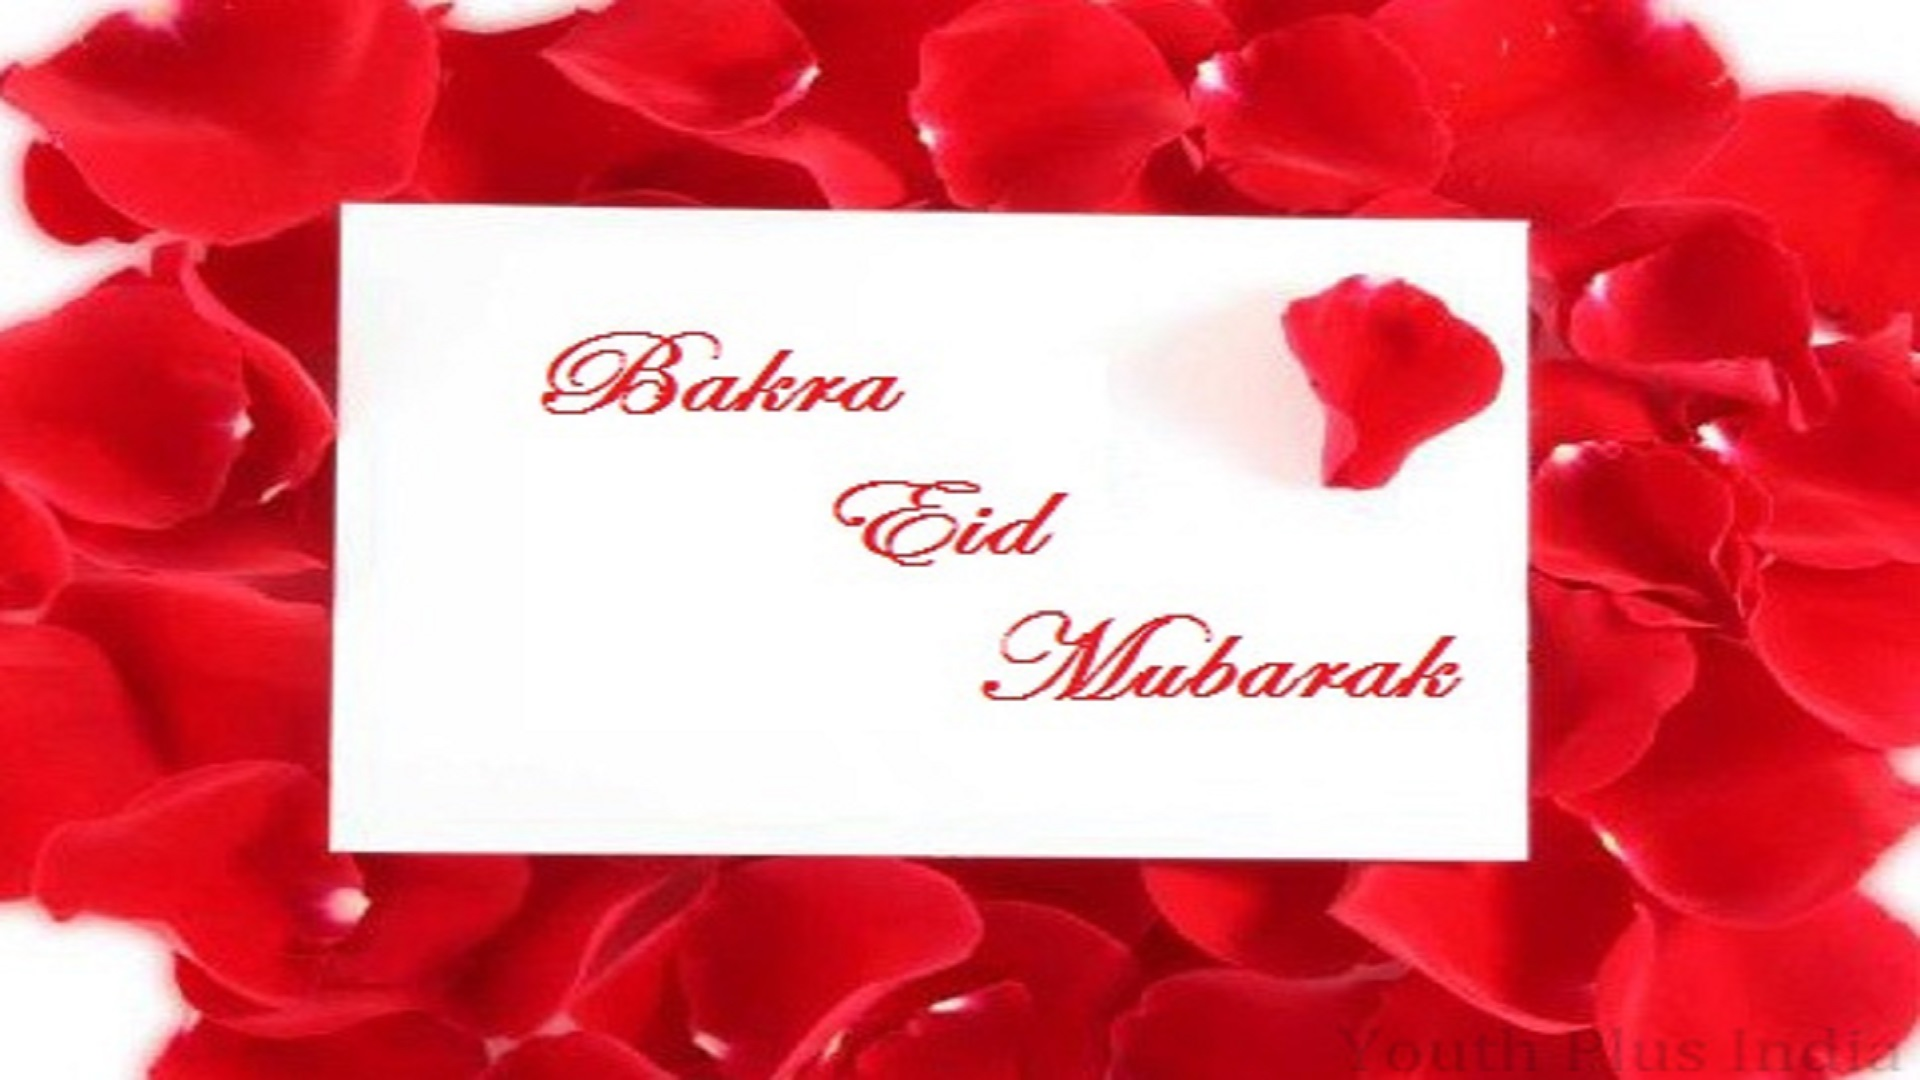 latest-happy-bakra-eid-mubarak-free-hd-wallpapers - hd wallpaper